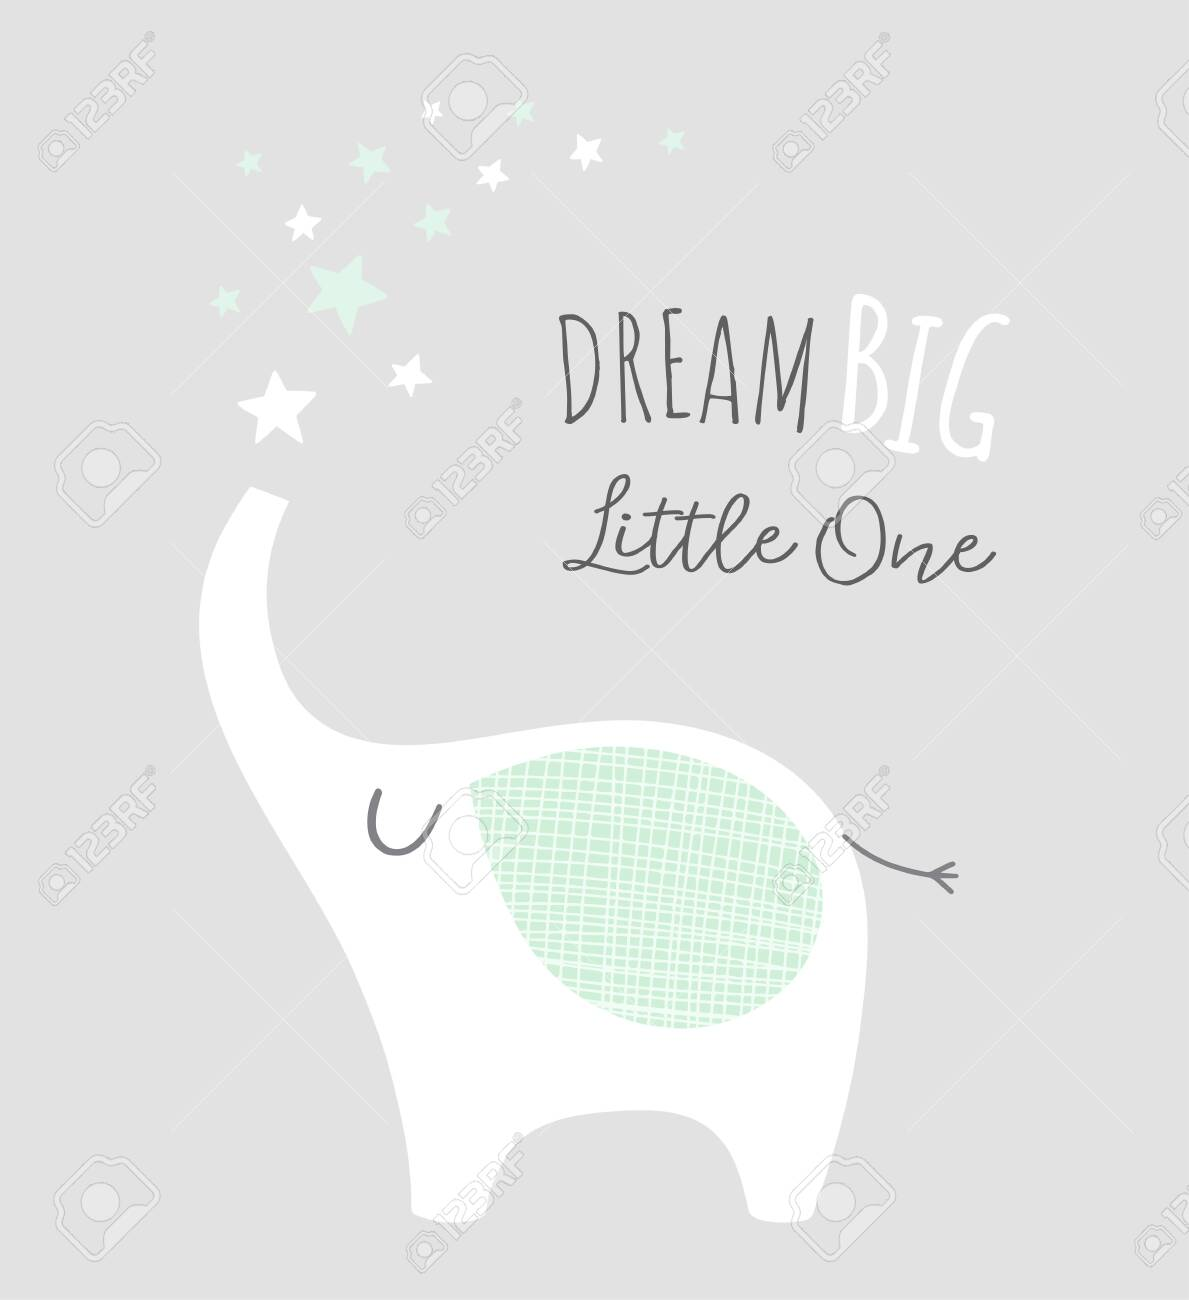 Dream Big Little One With Cute Elephant And Stars Nursery Poster Royalty Free Cliparts Vectors And Stock Illustration Image 136203078